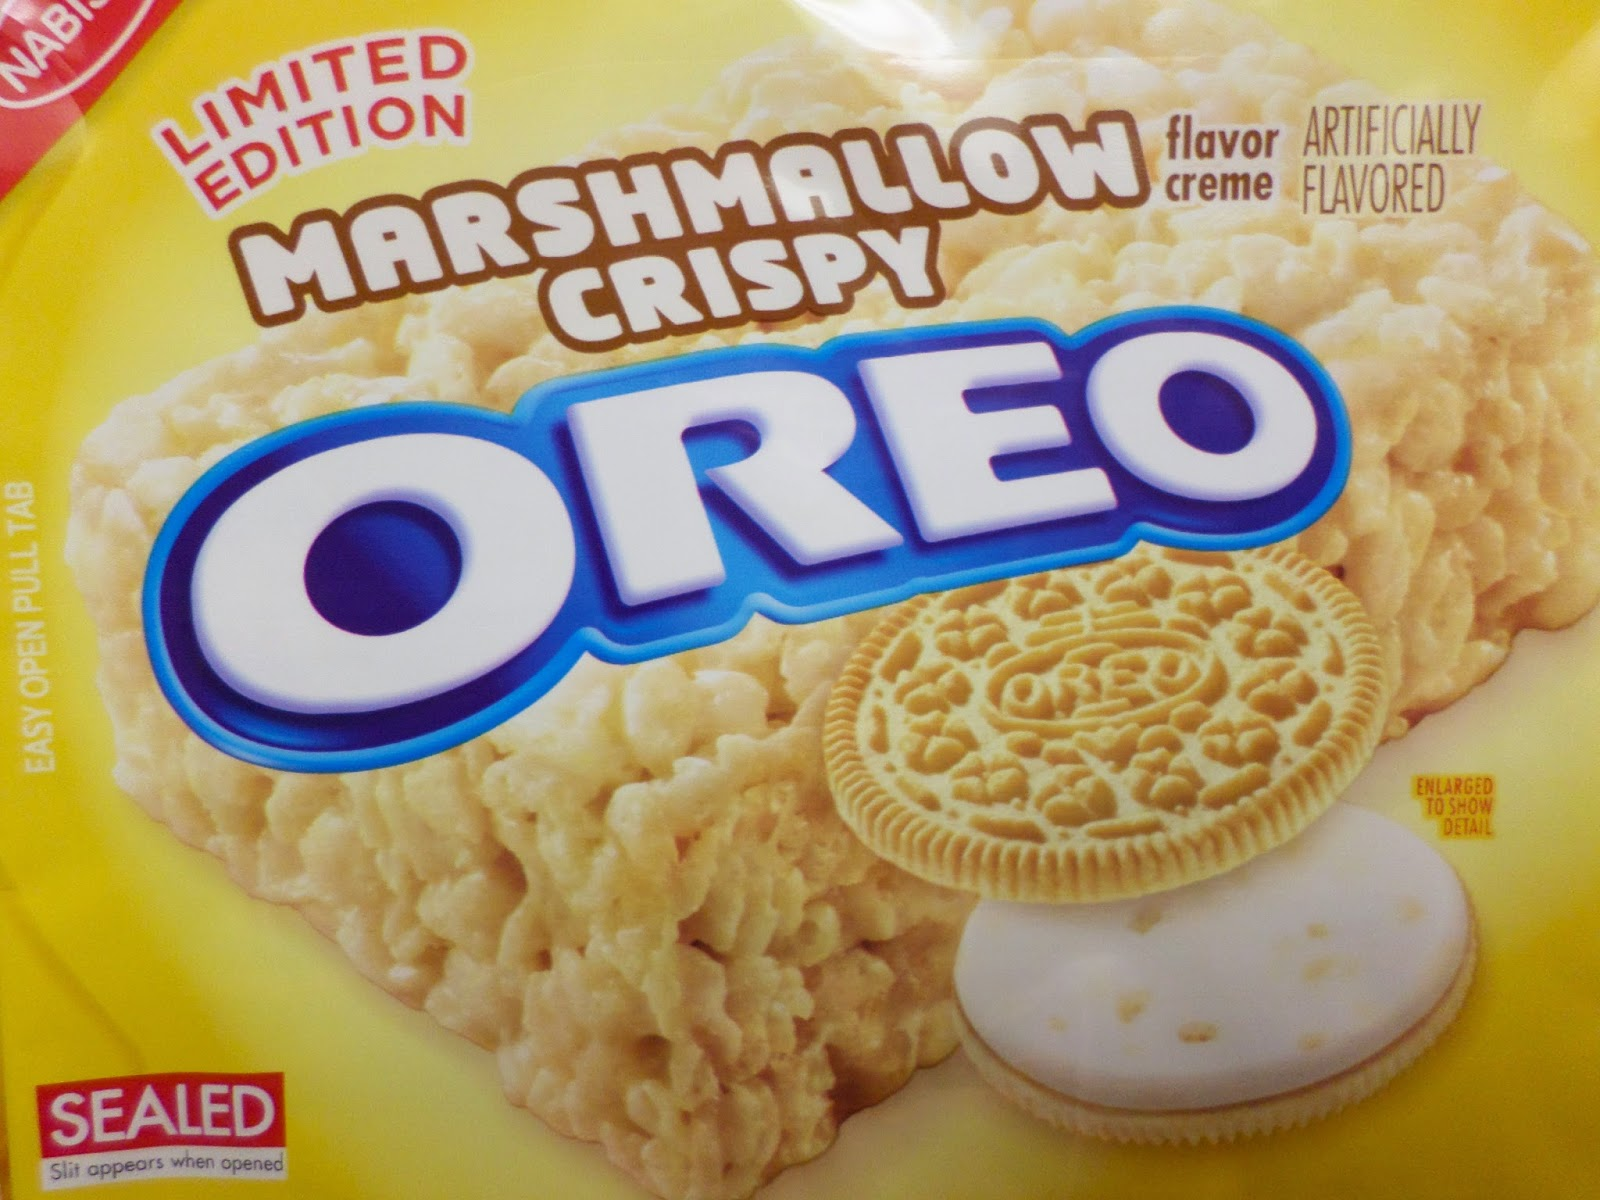 Limited Edition Marshmallow Crispy Oreo